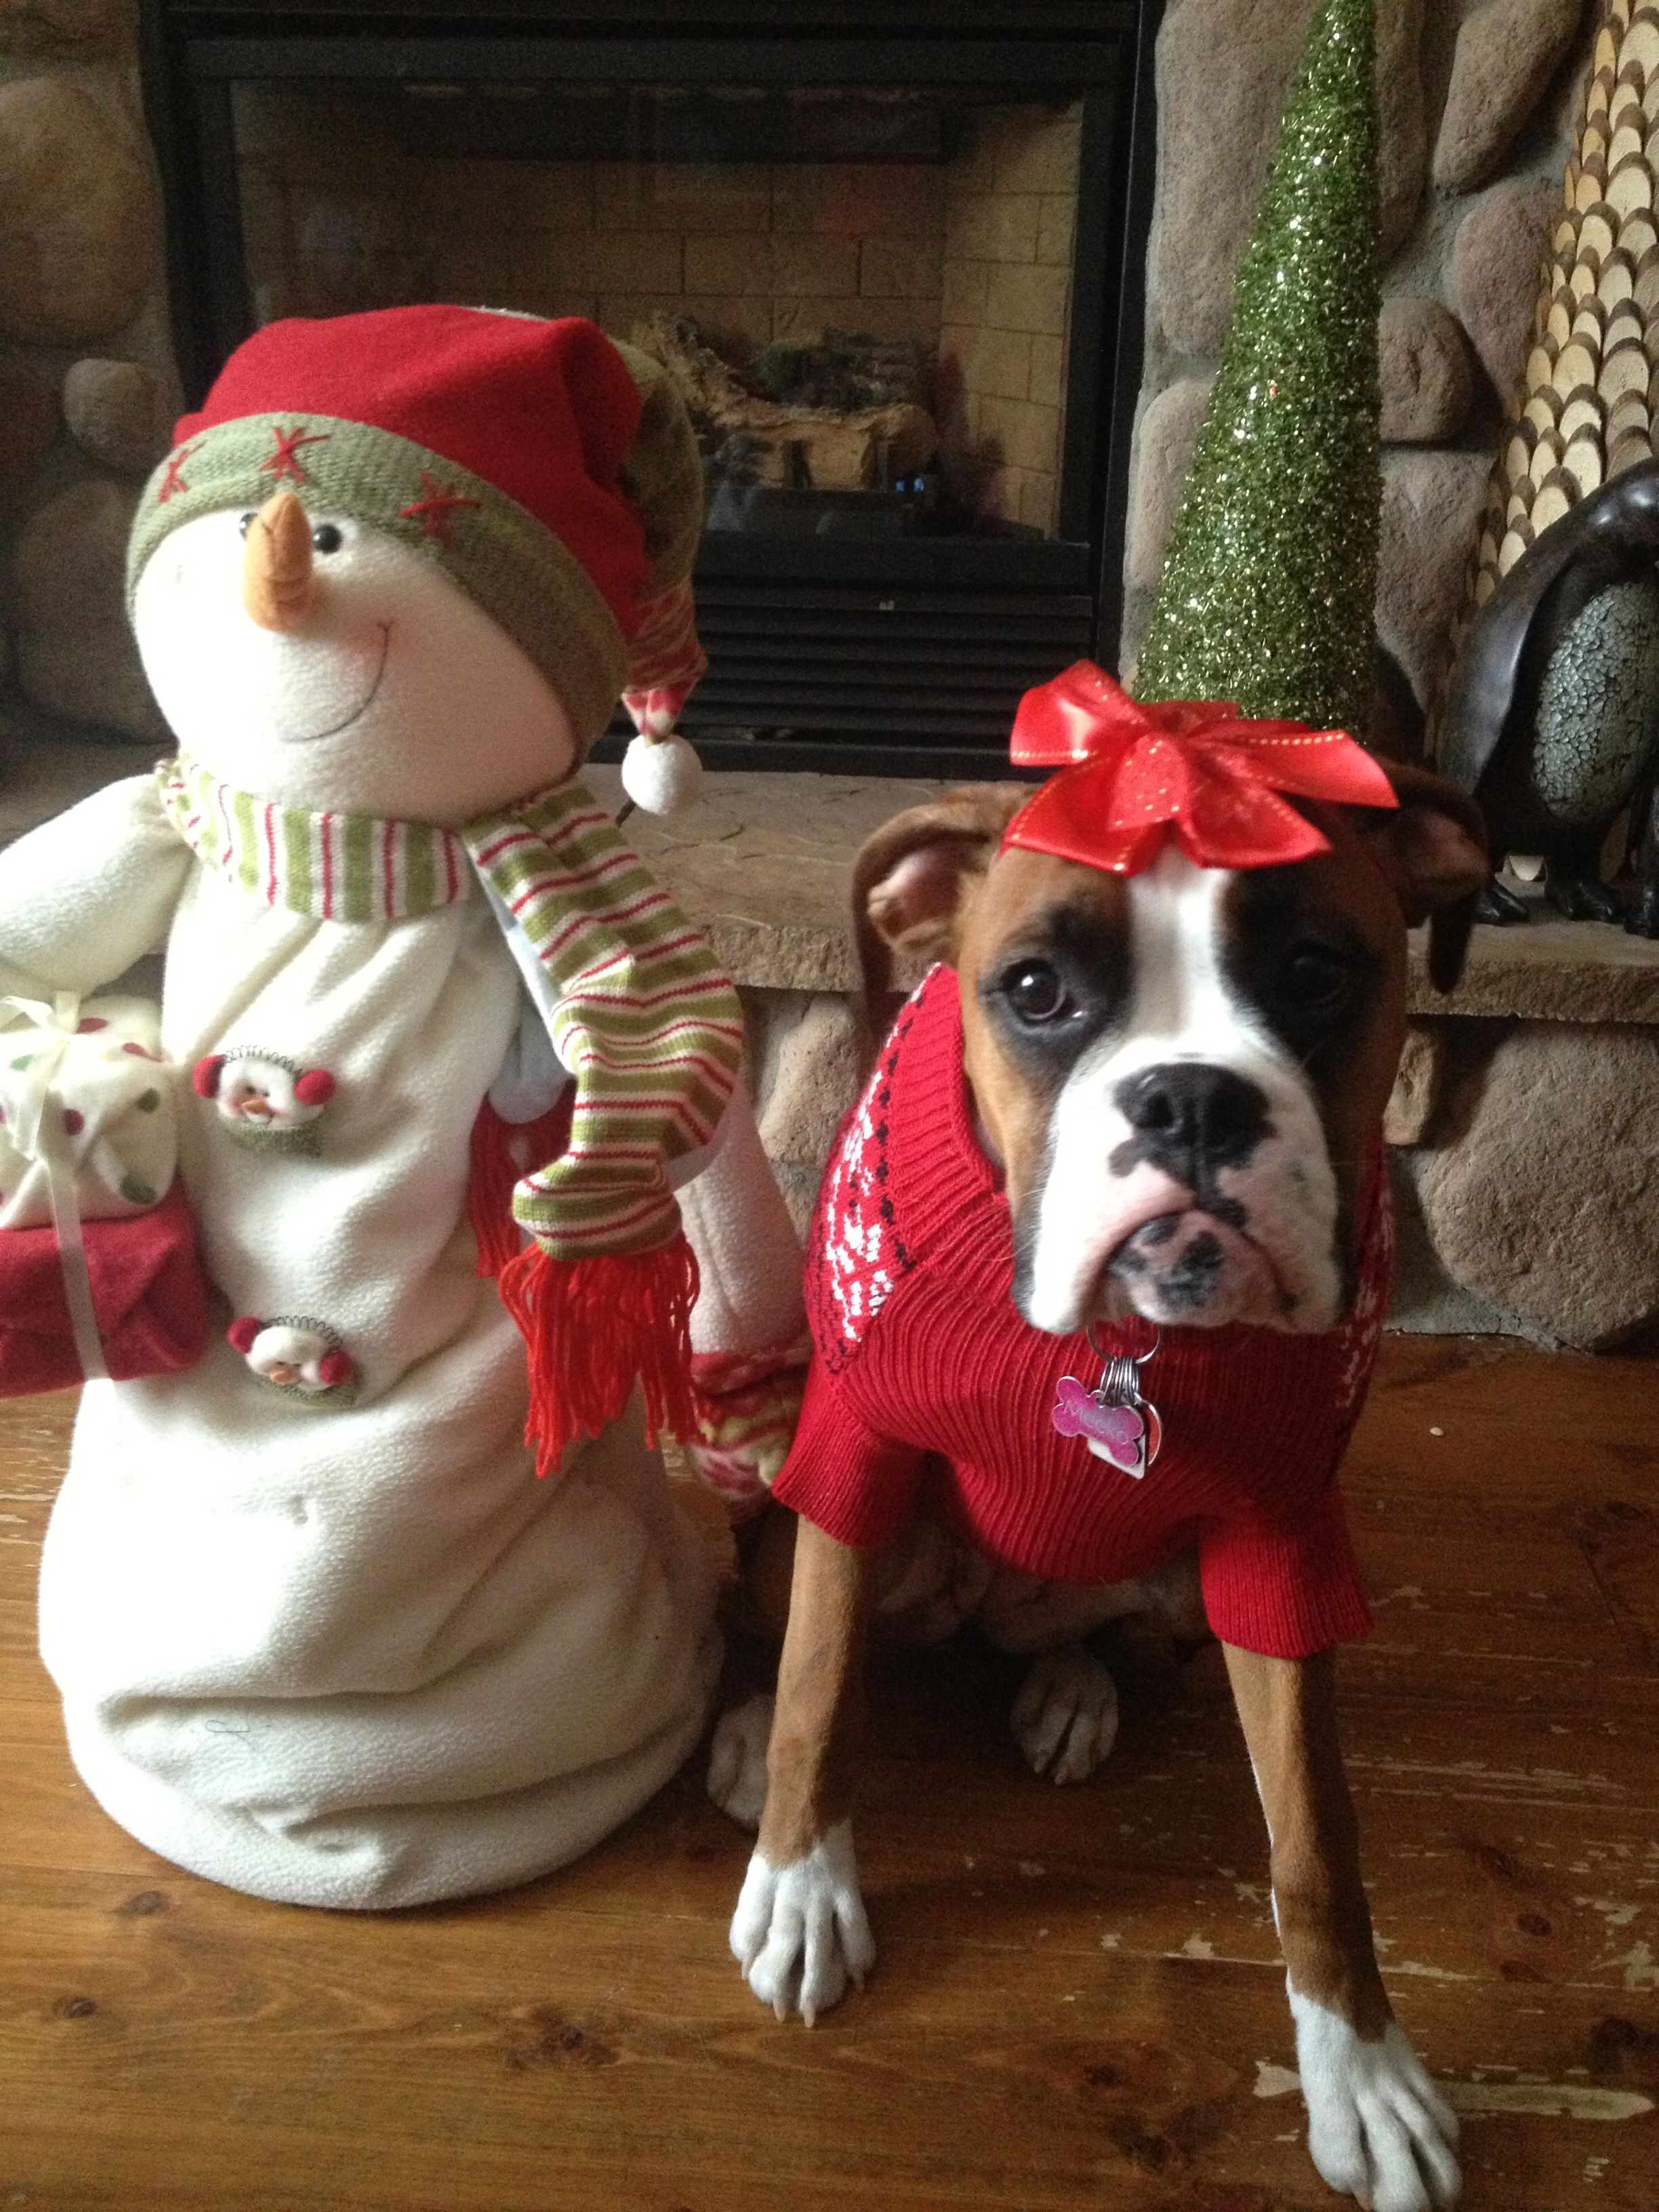 my boxer girl looking so cute in her Xmas sweater. Merry